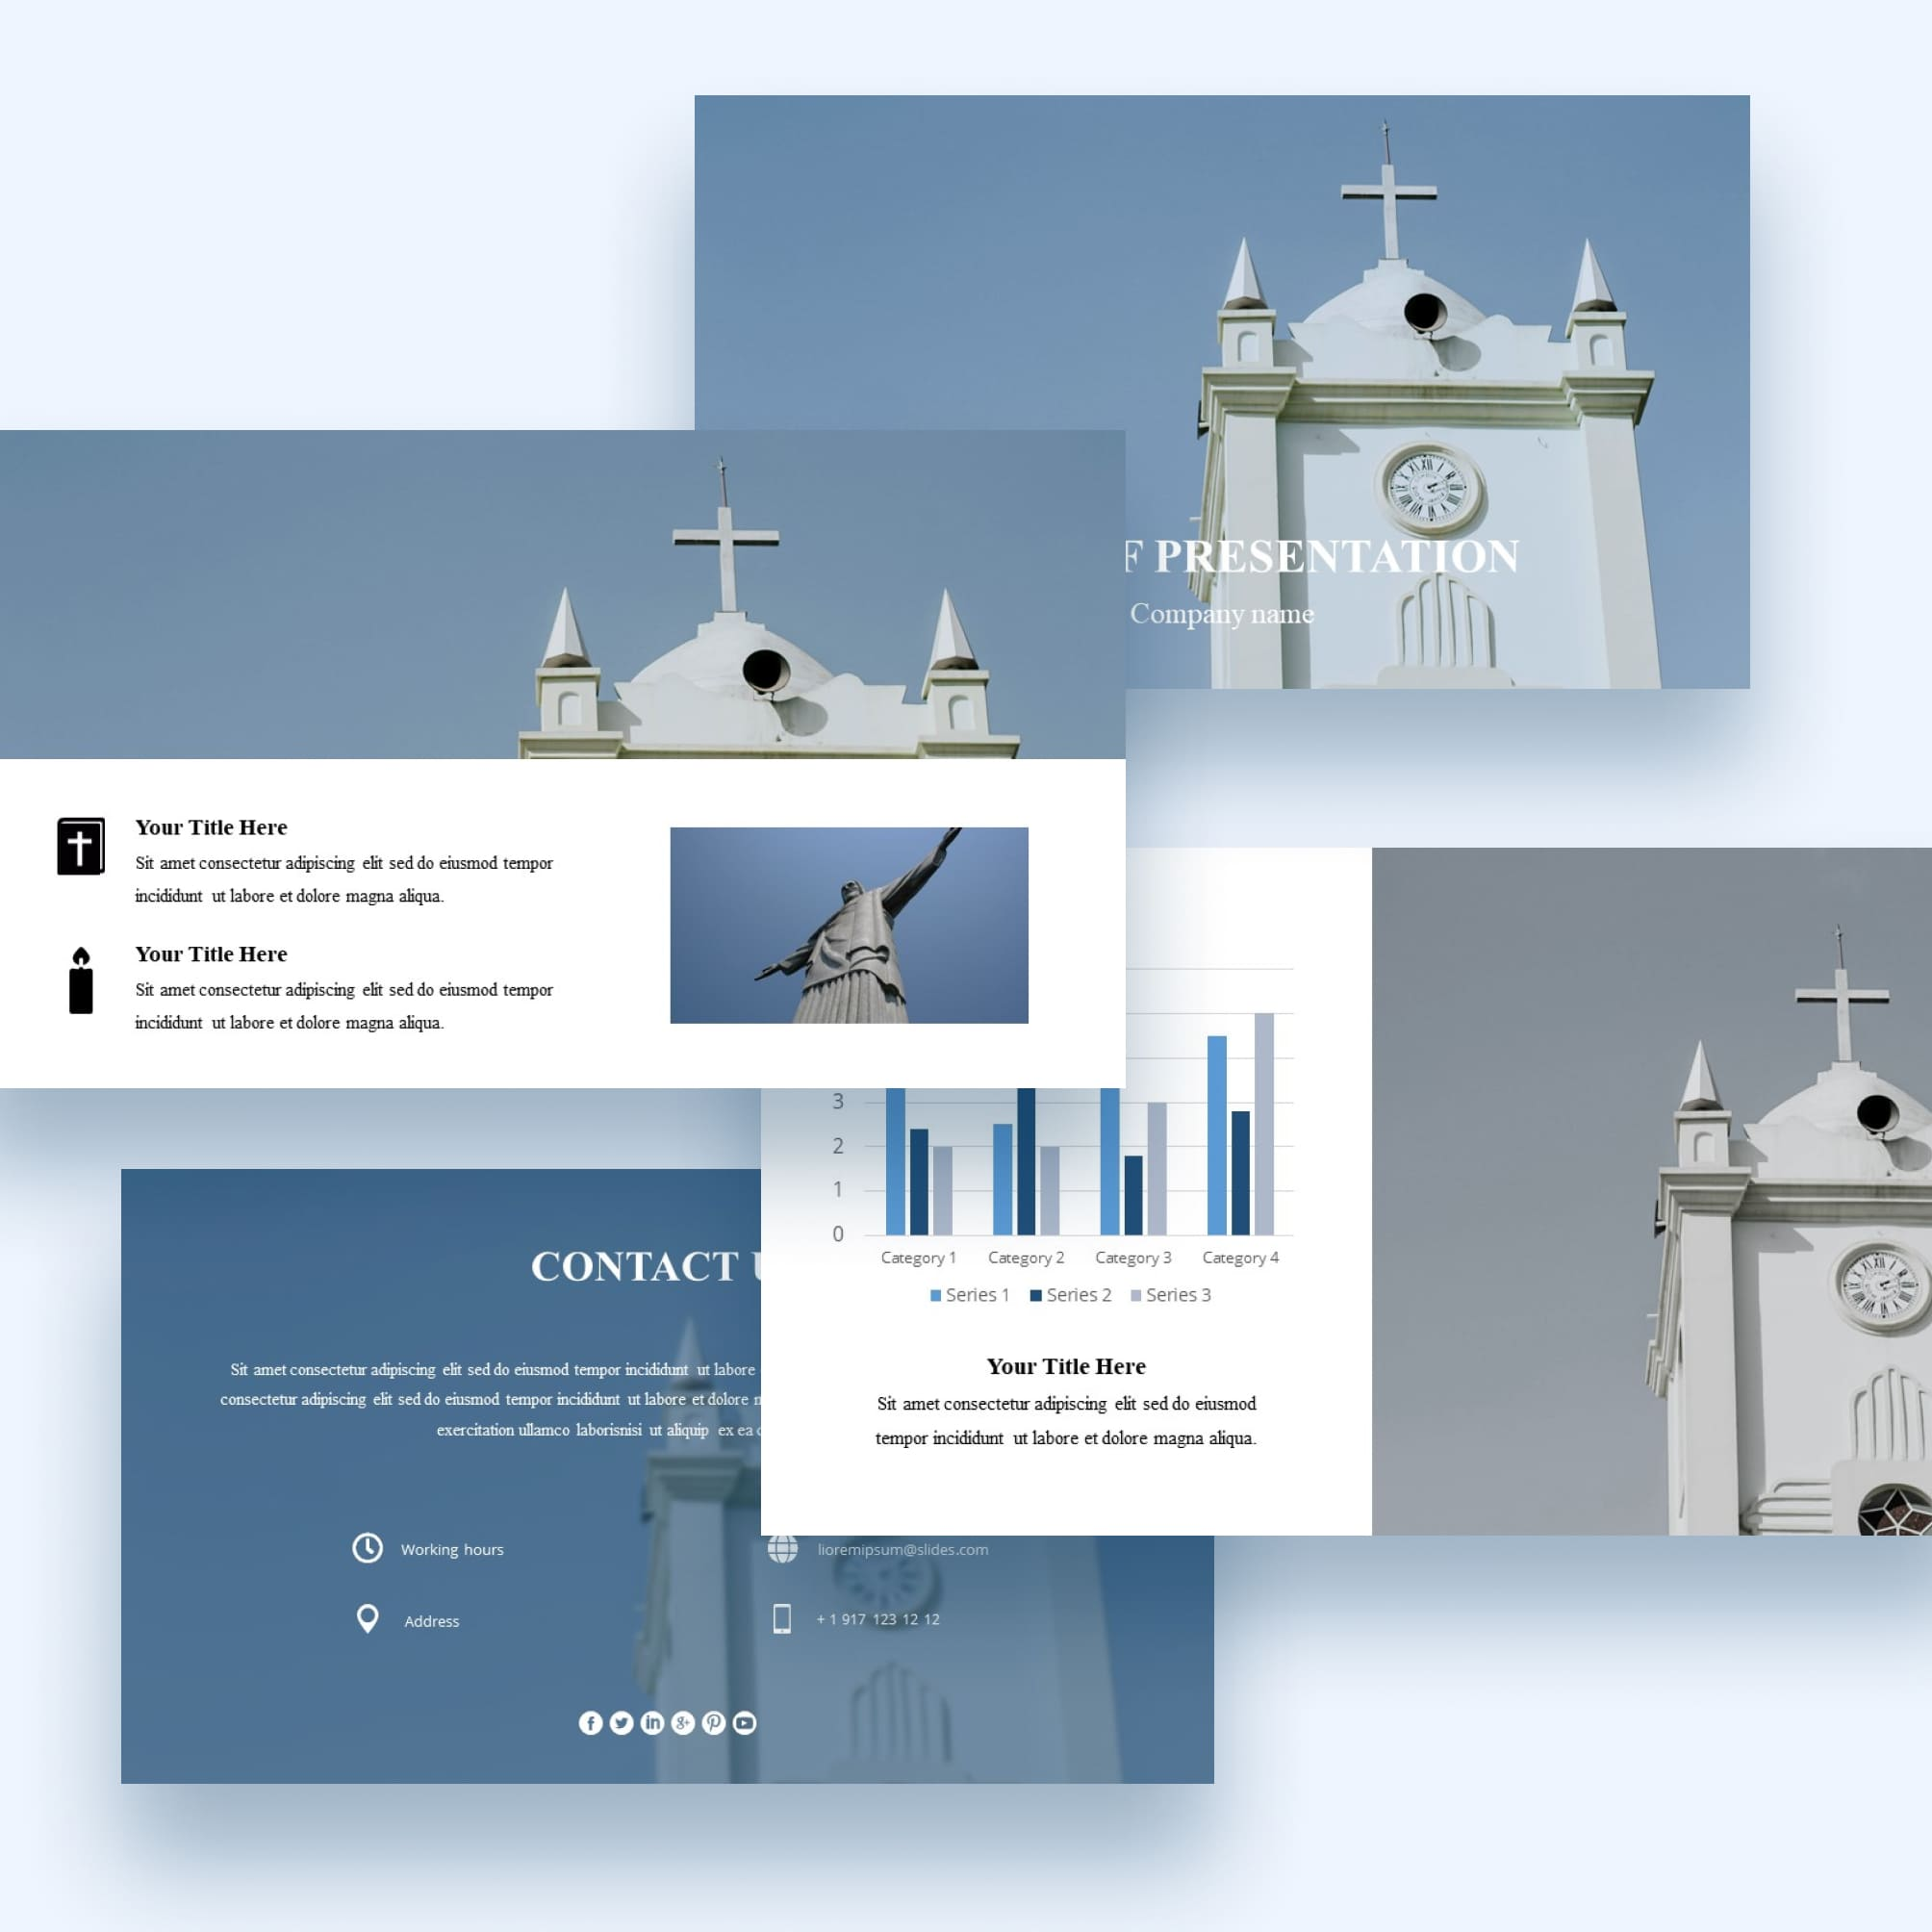 worship service powerpoint background images